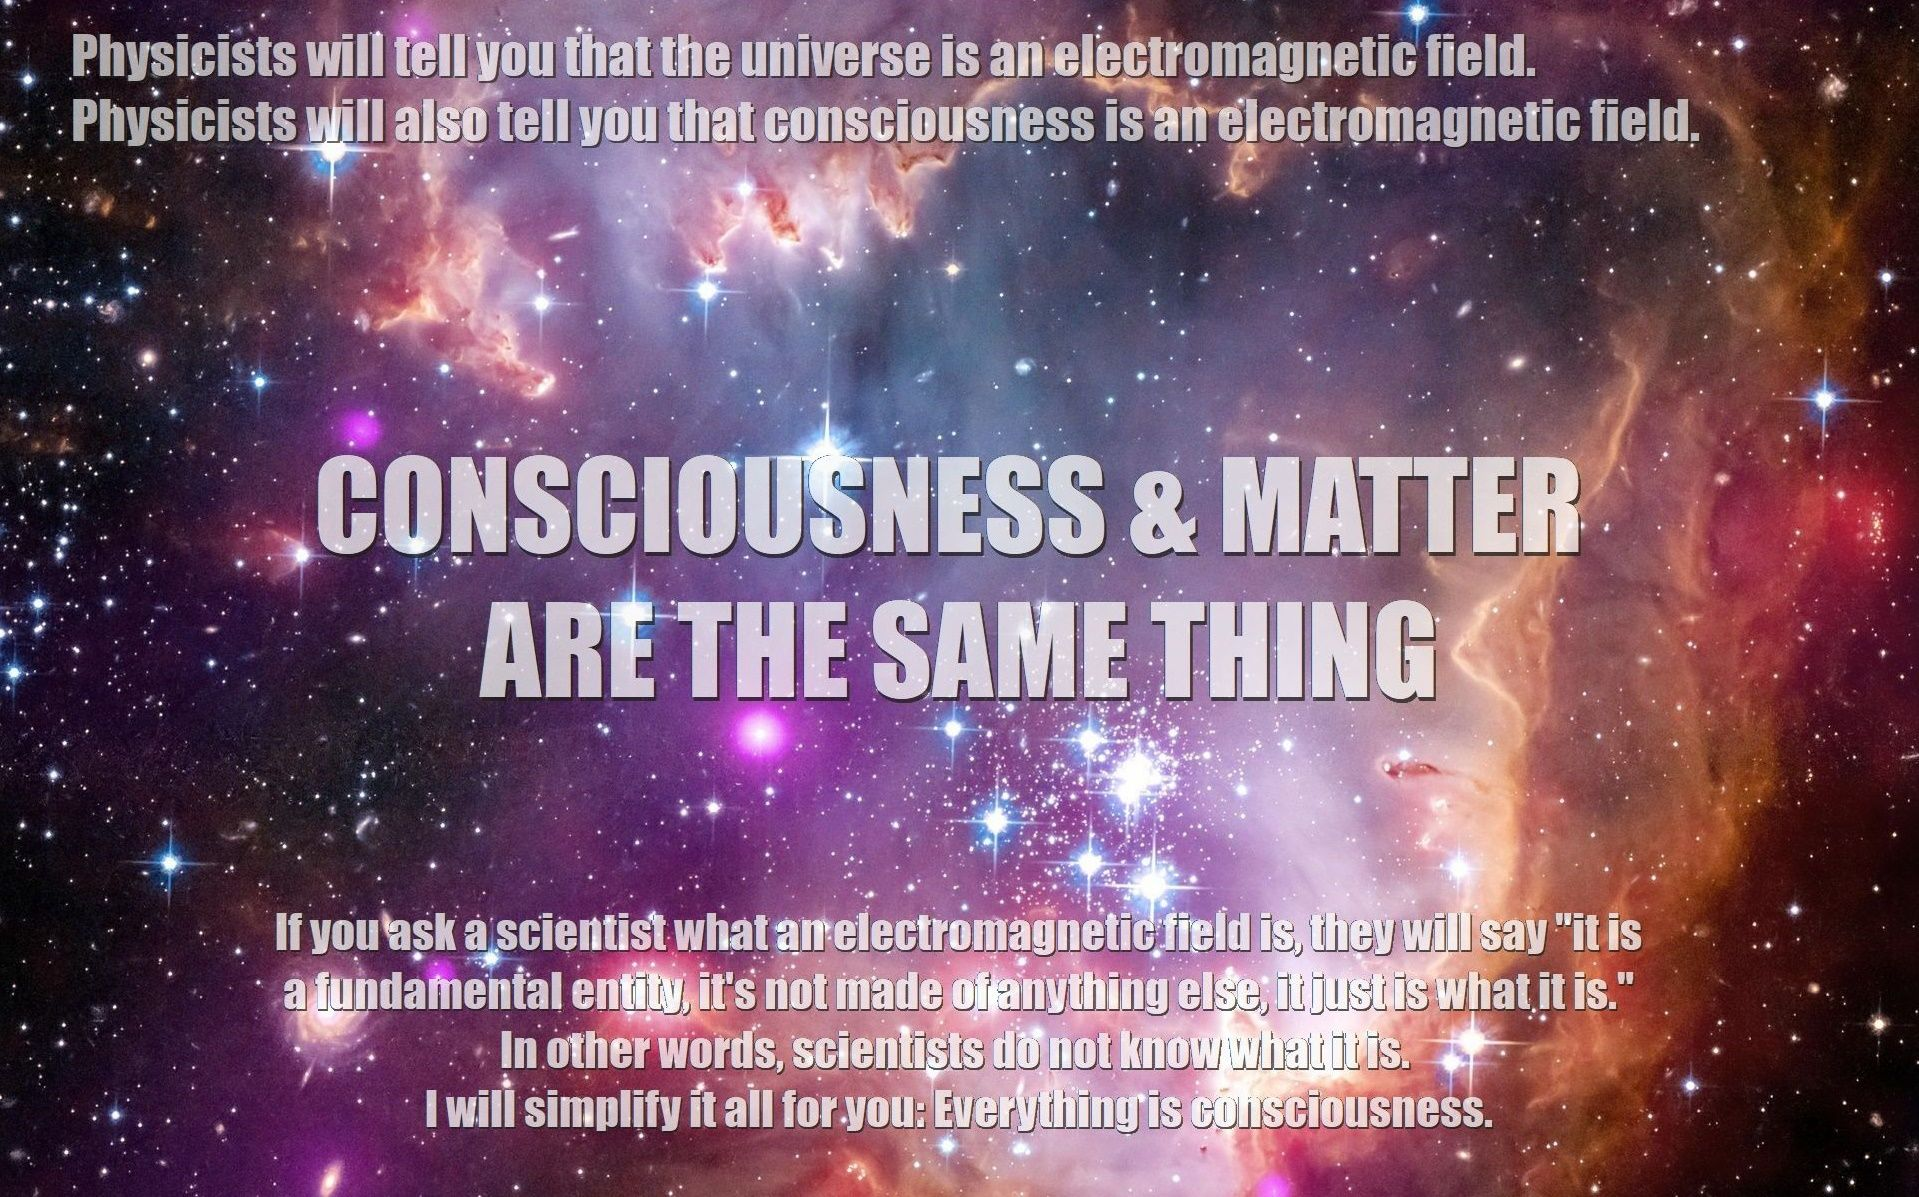 Is-consciousness-matter-are-electromagnetic-fields-waves-is-mind-fundamental-1a-1919